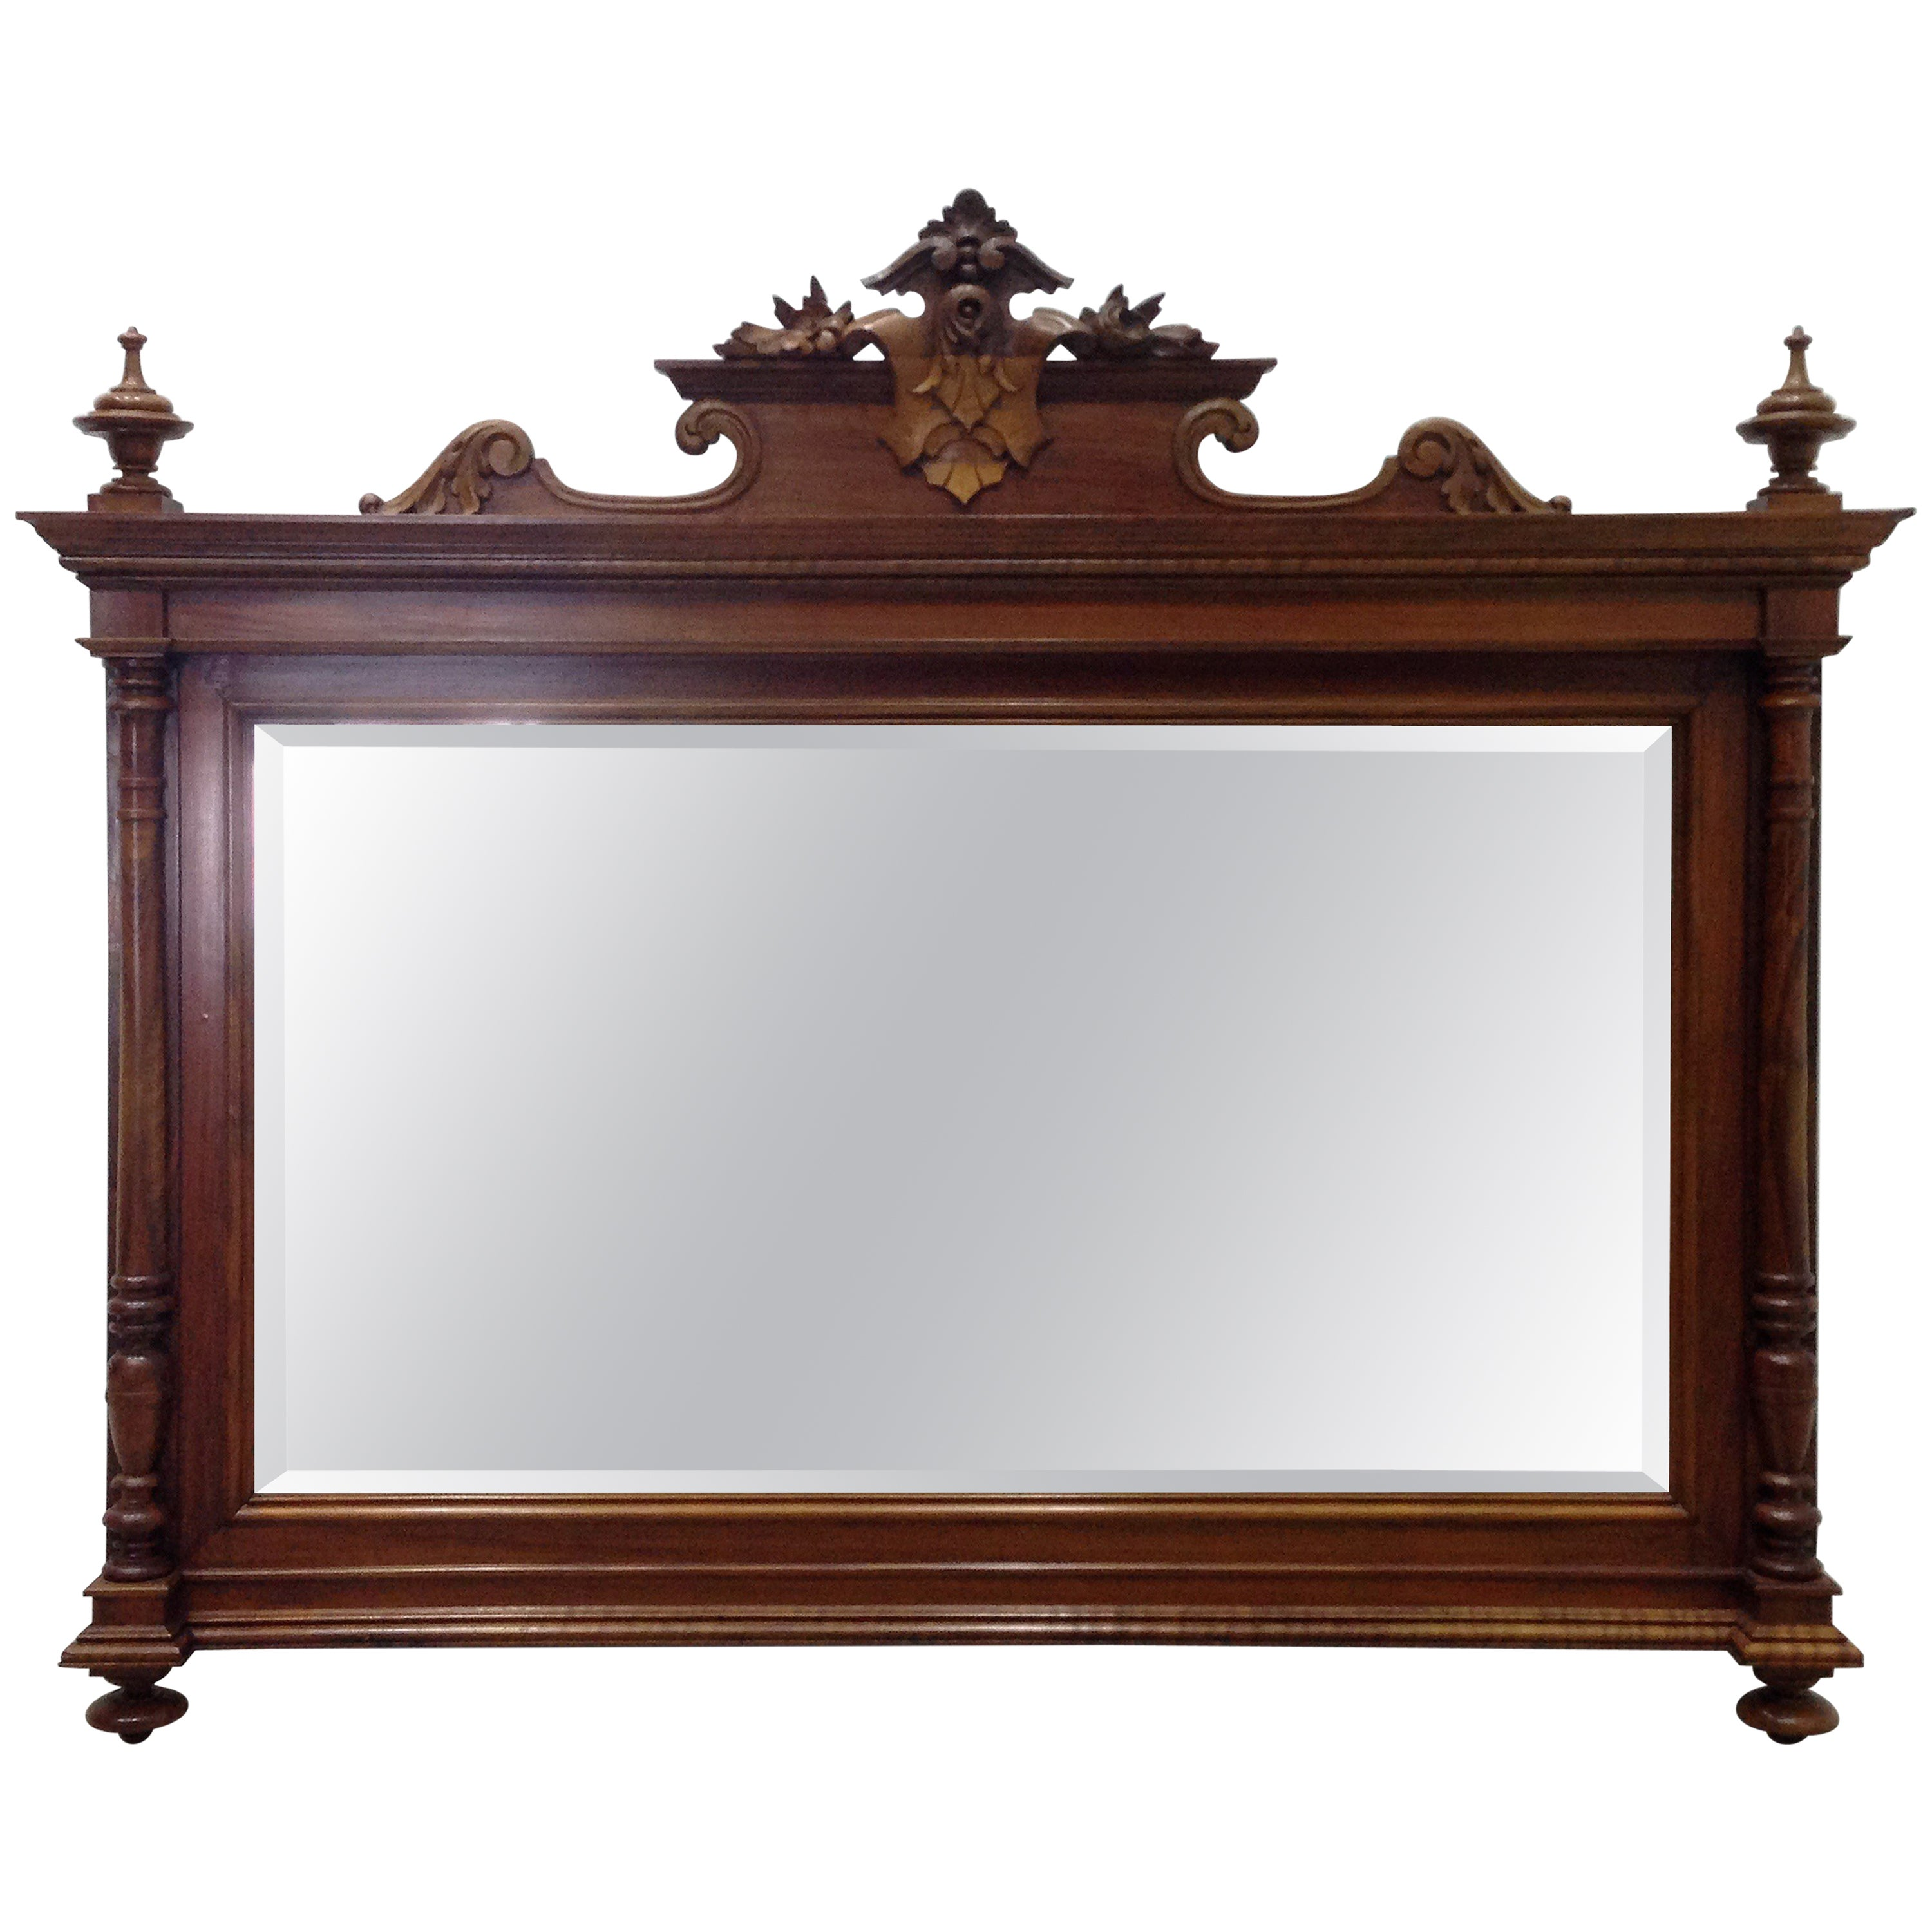 George IV Period Walnut Carved Horizontal Mirror